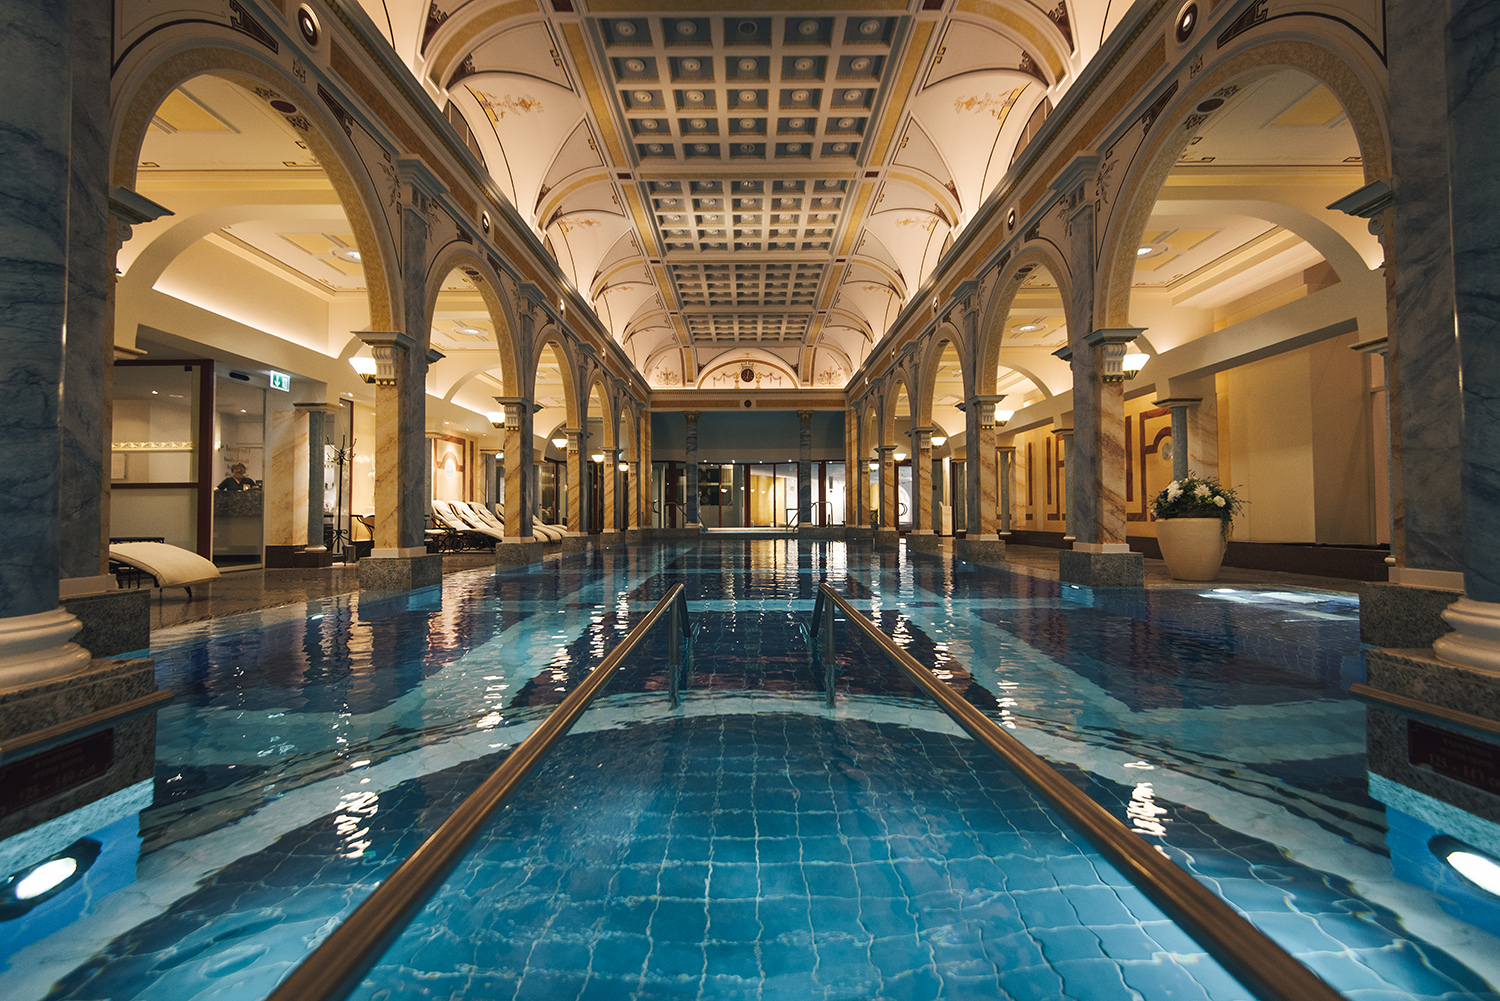 The resort is centered around a bathing tradition spanning hundreds of years.